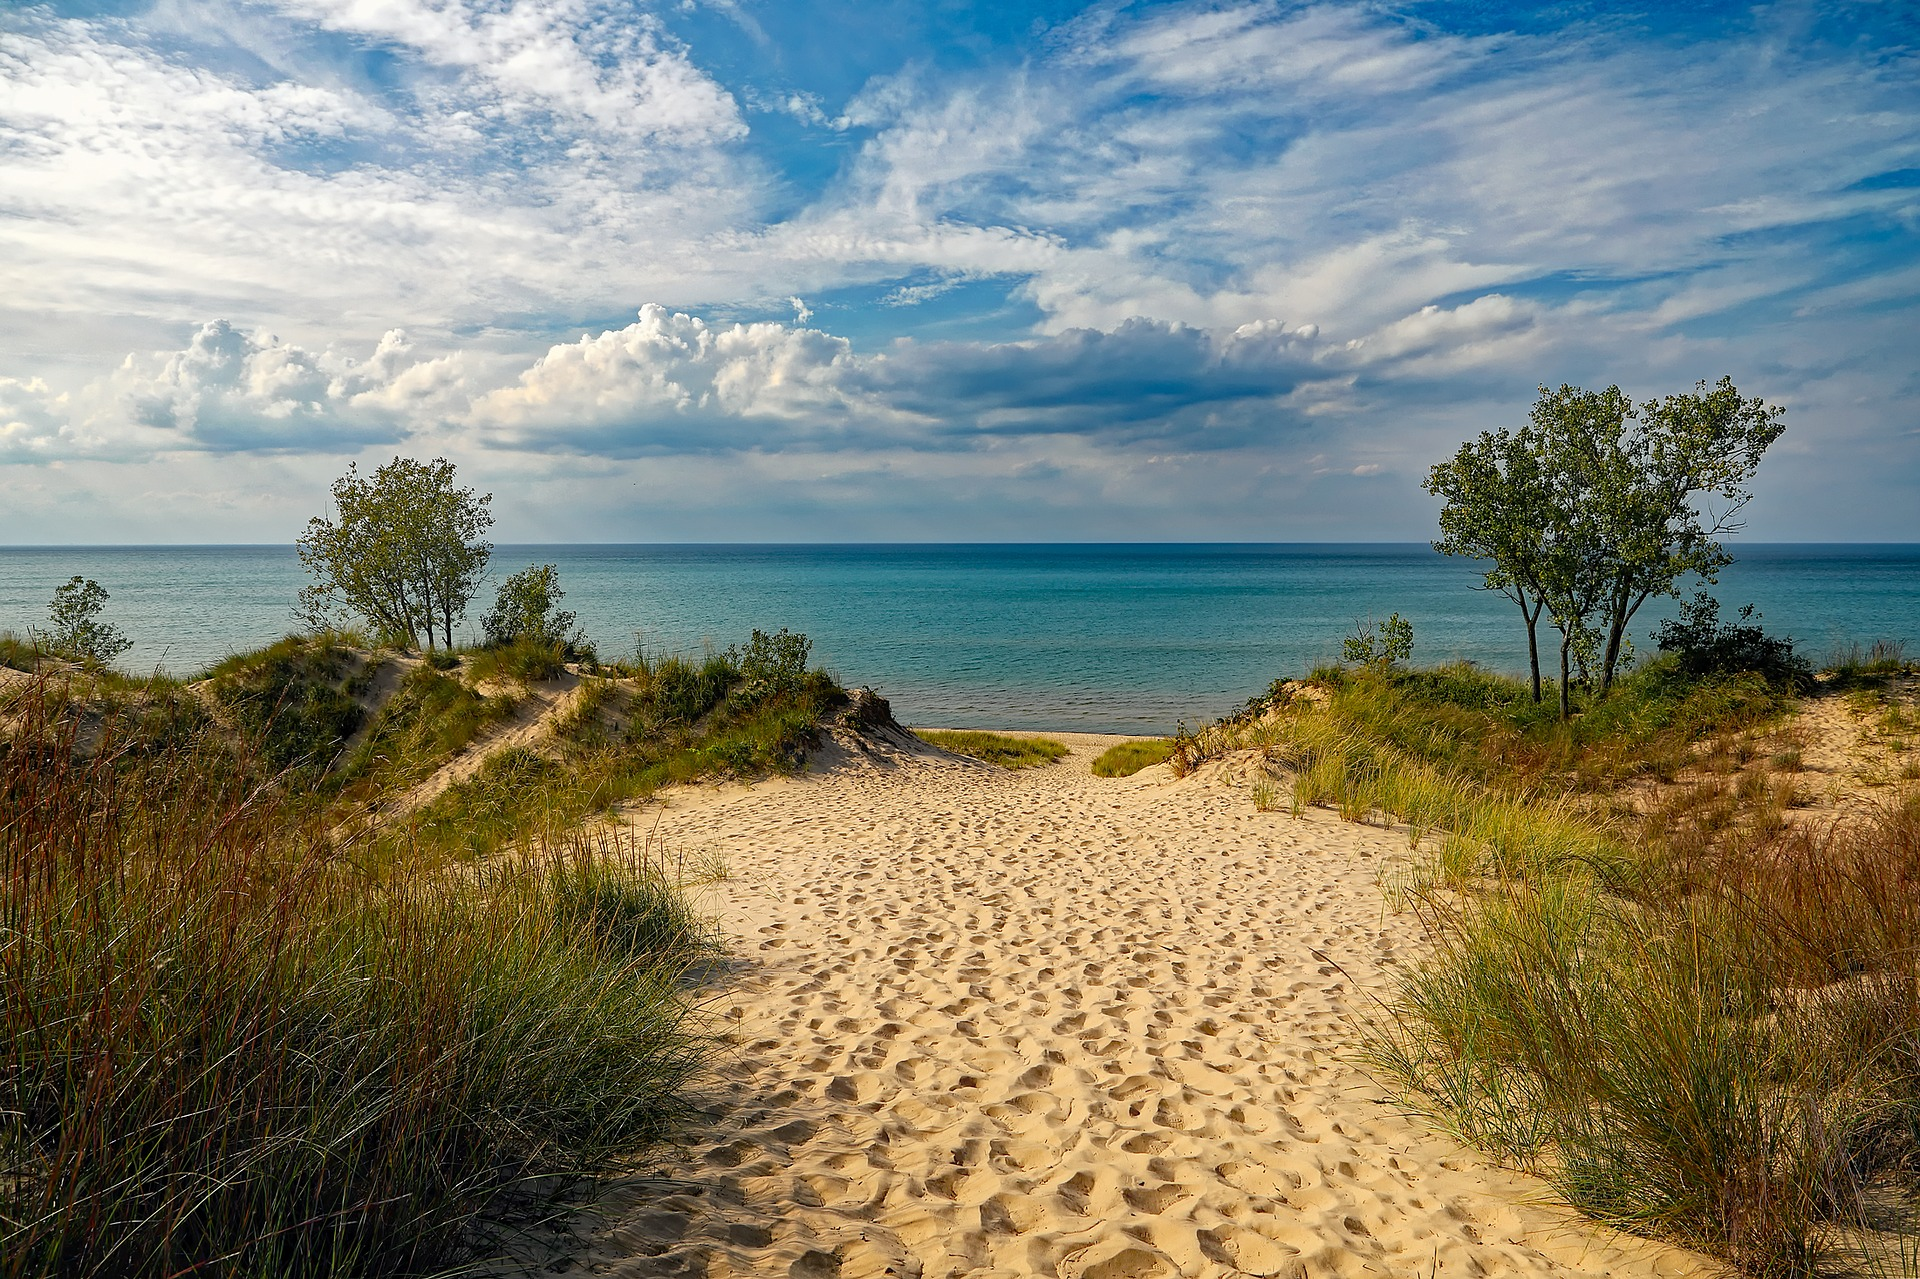 Taking a midwest road trip 26 fun family destinations for Fun road trip destinations east coast